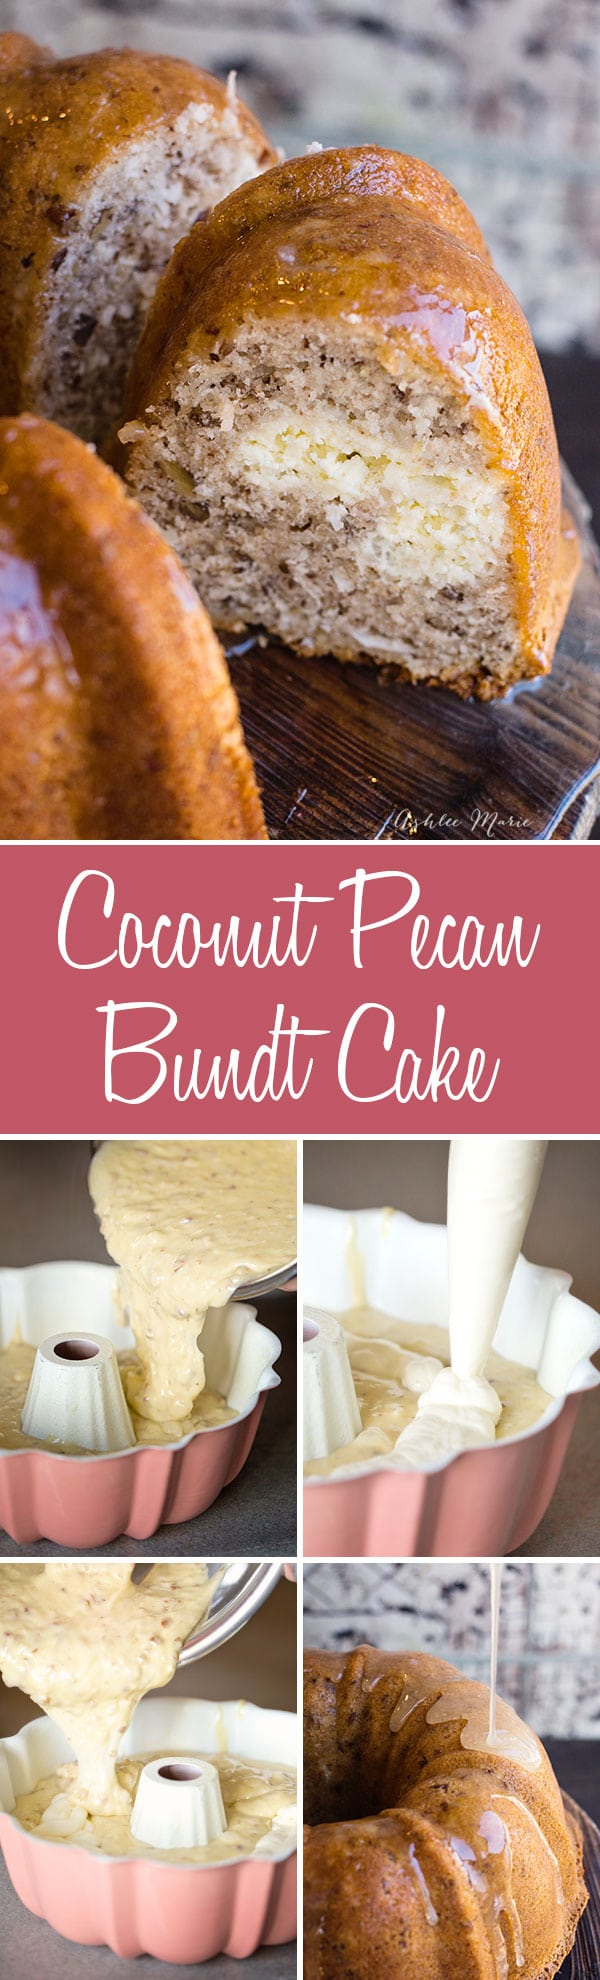 A ribbon of cheesecake flows in the center of this moist and delicious coconut pecan bundt cake, topped with an amazing coconut glaze it does not get much better than this sweet treat